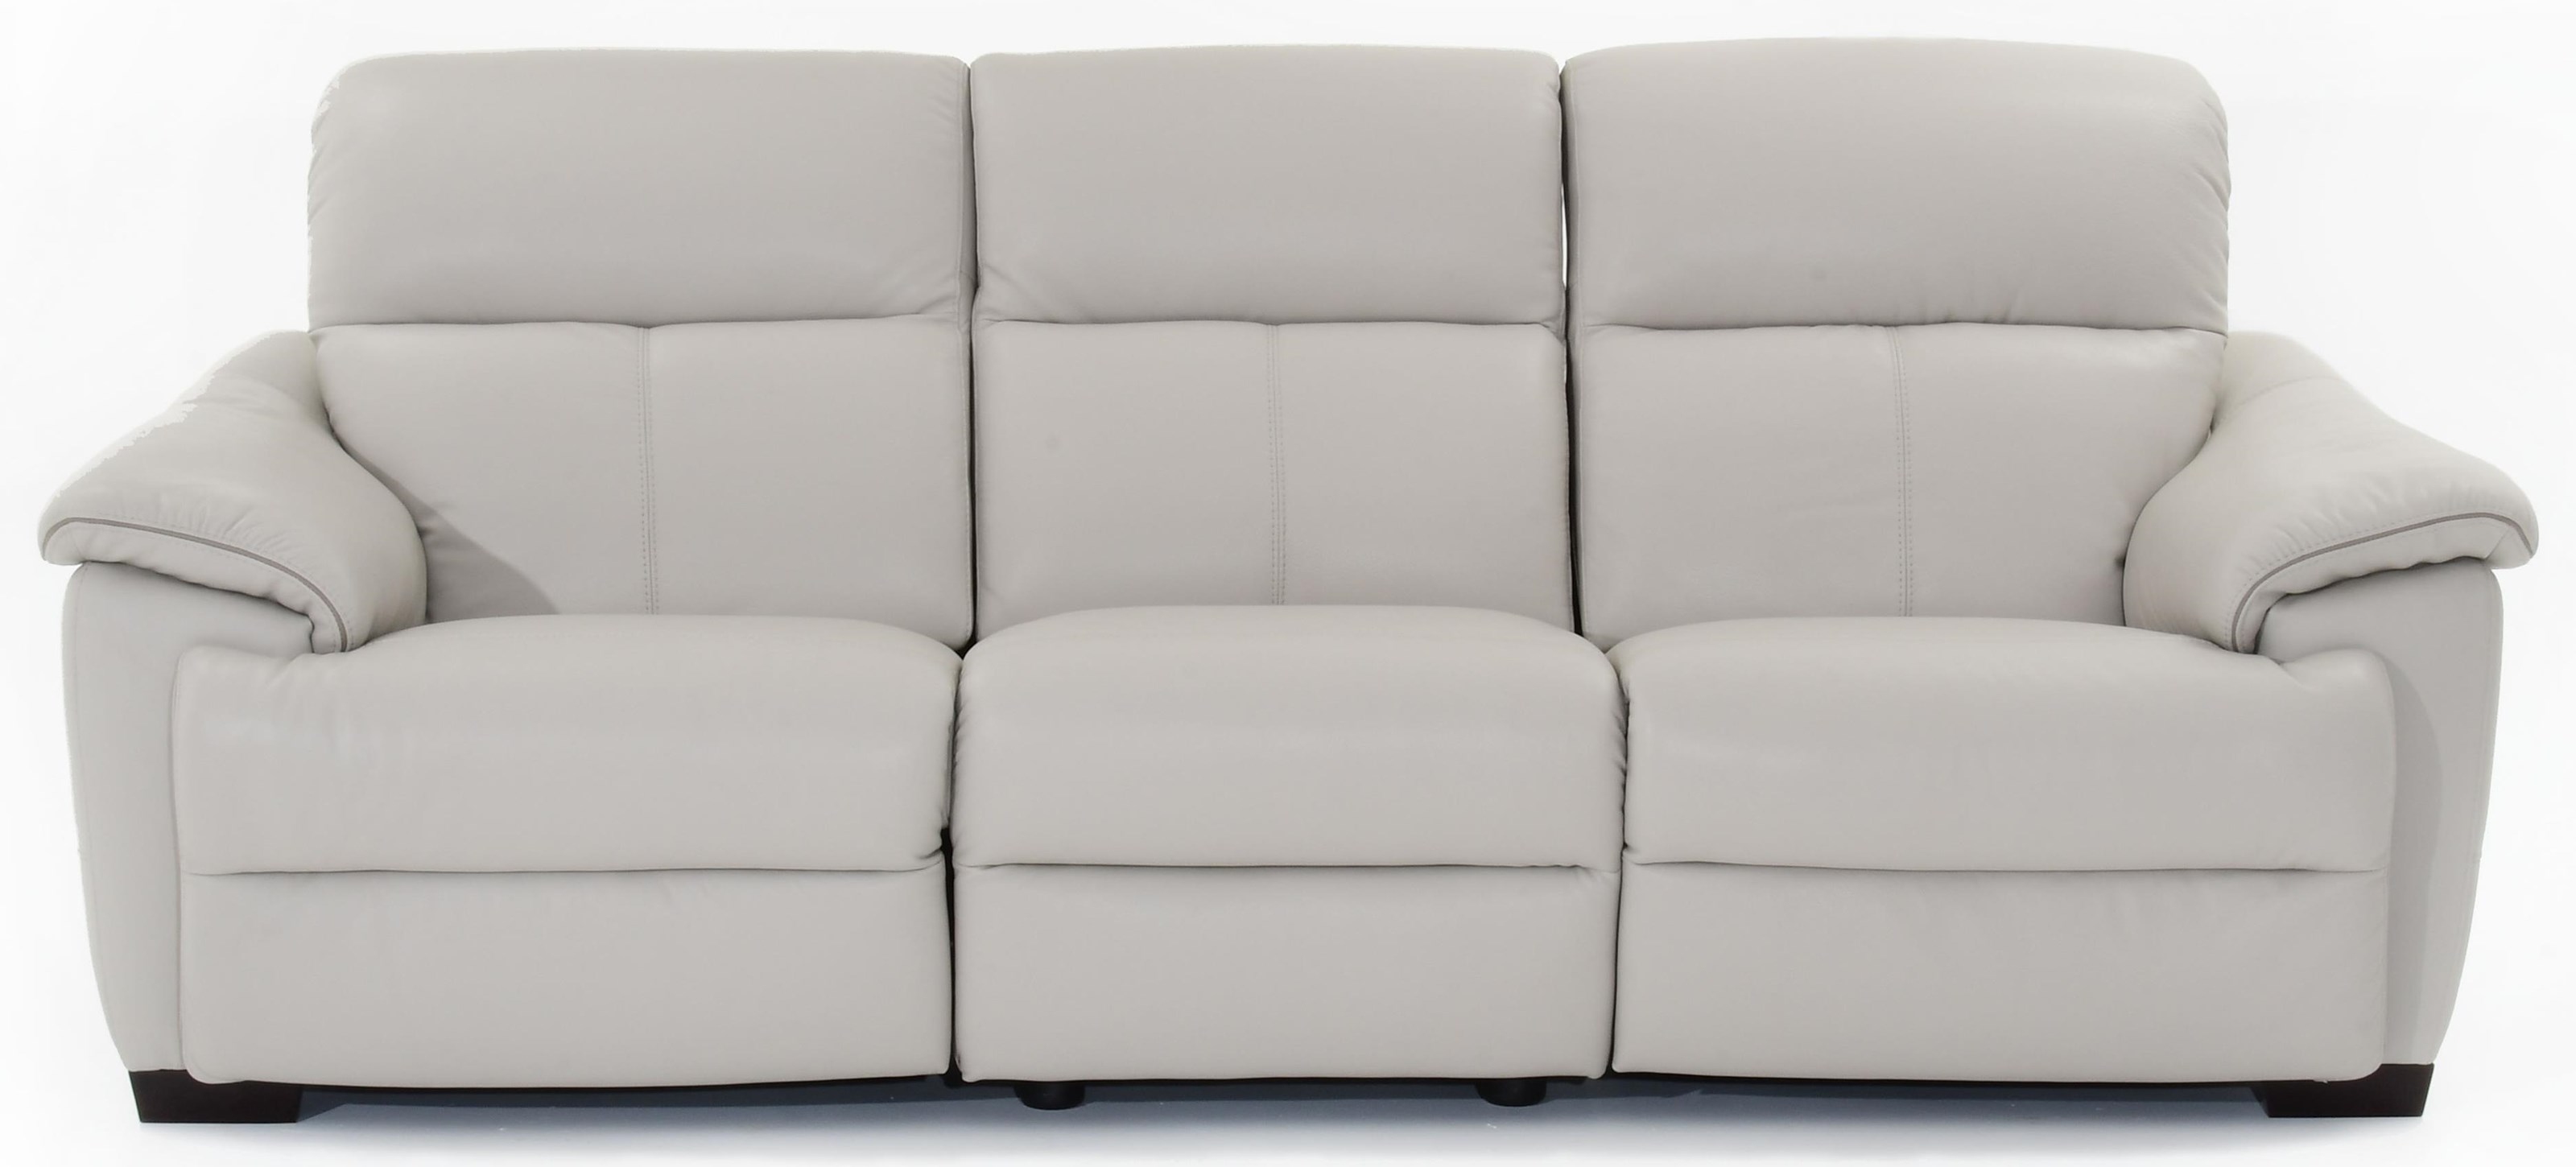 Natuzzi Editions Potenza Wall Hugger Power Reclining Sectional - Item Number: C063-N00+N02+001 1581sp-18